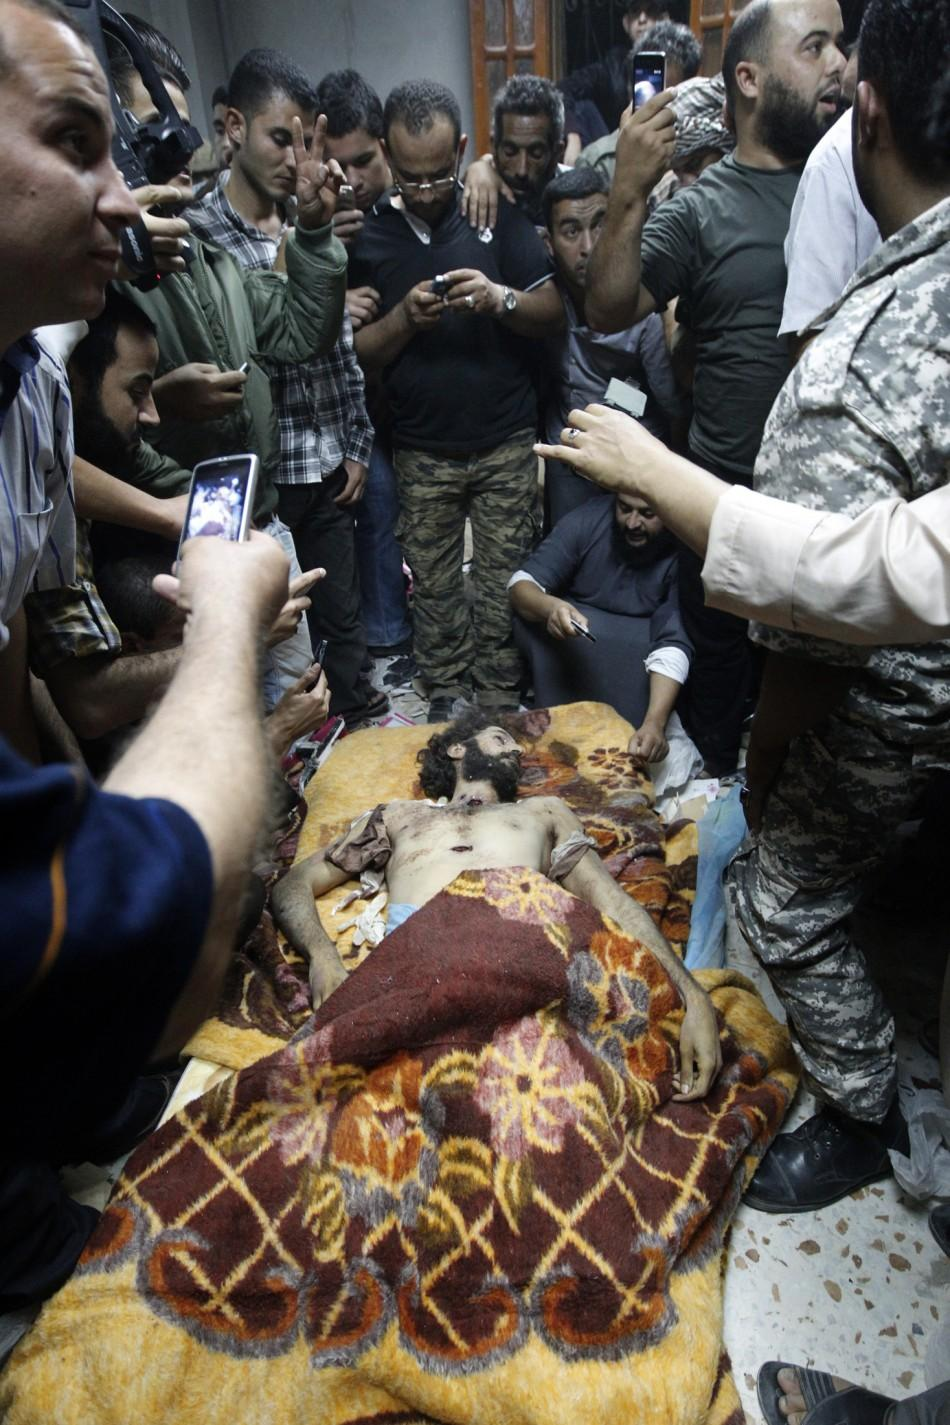 Men stand around and take pictures of Mo'tassim Gaddafi, son of Muammar Gaddafi, in Misrata after being captured and killed during clashes with anti-Gaddafi fighters in Sirte October 20, 2011.